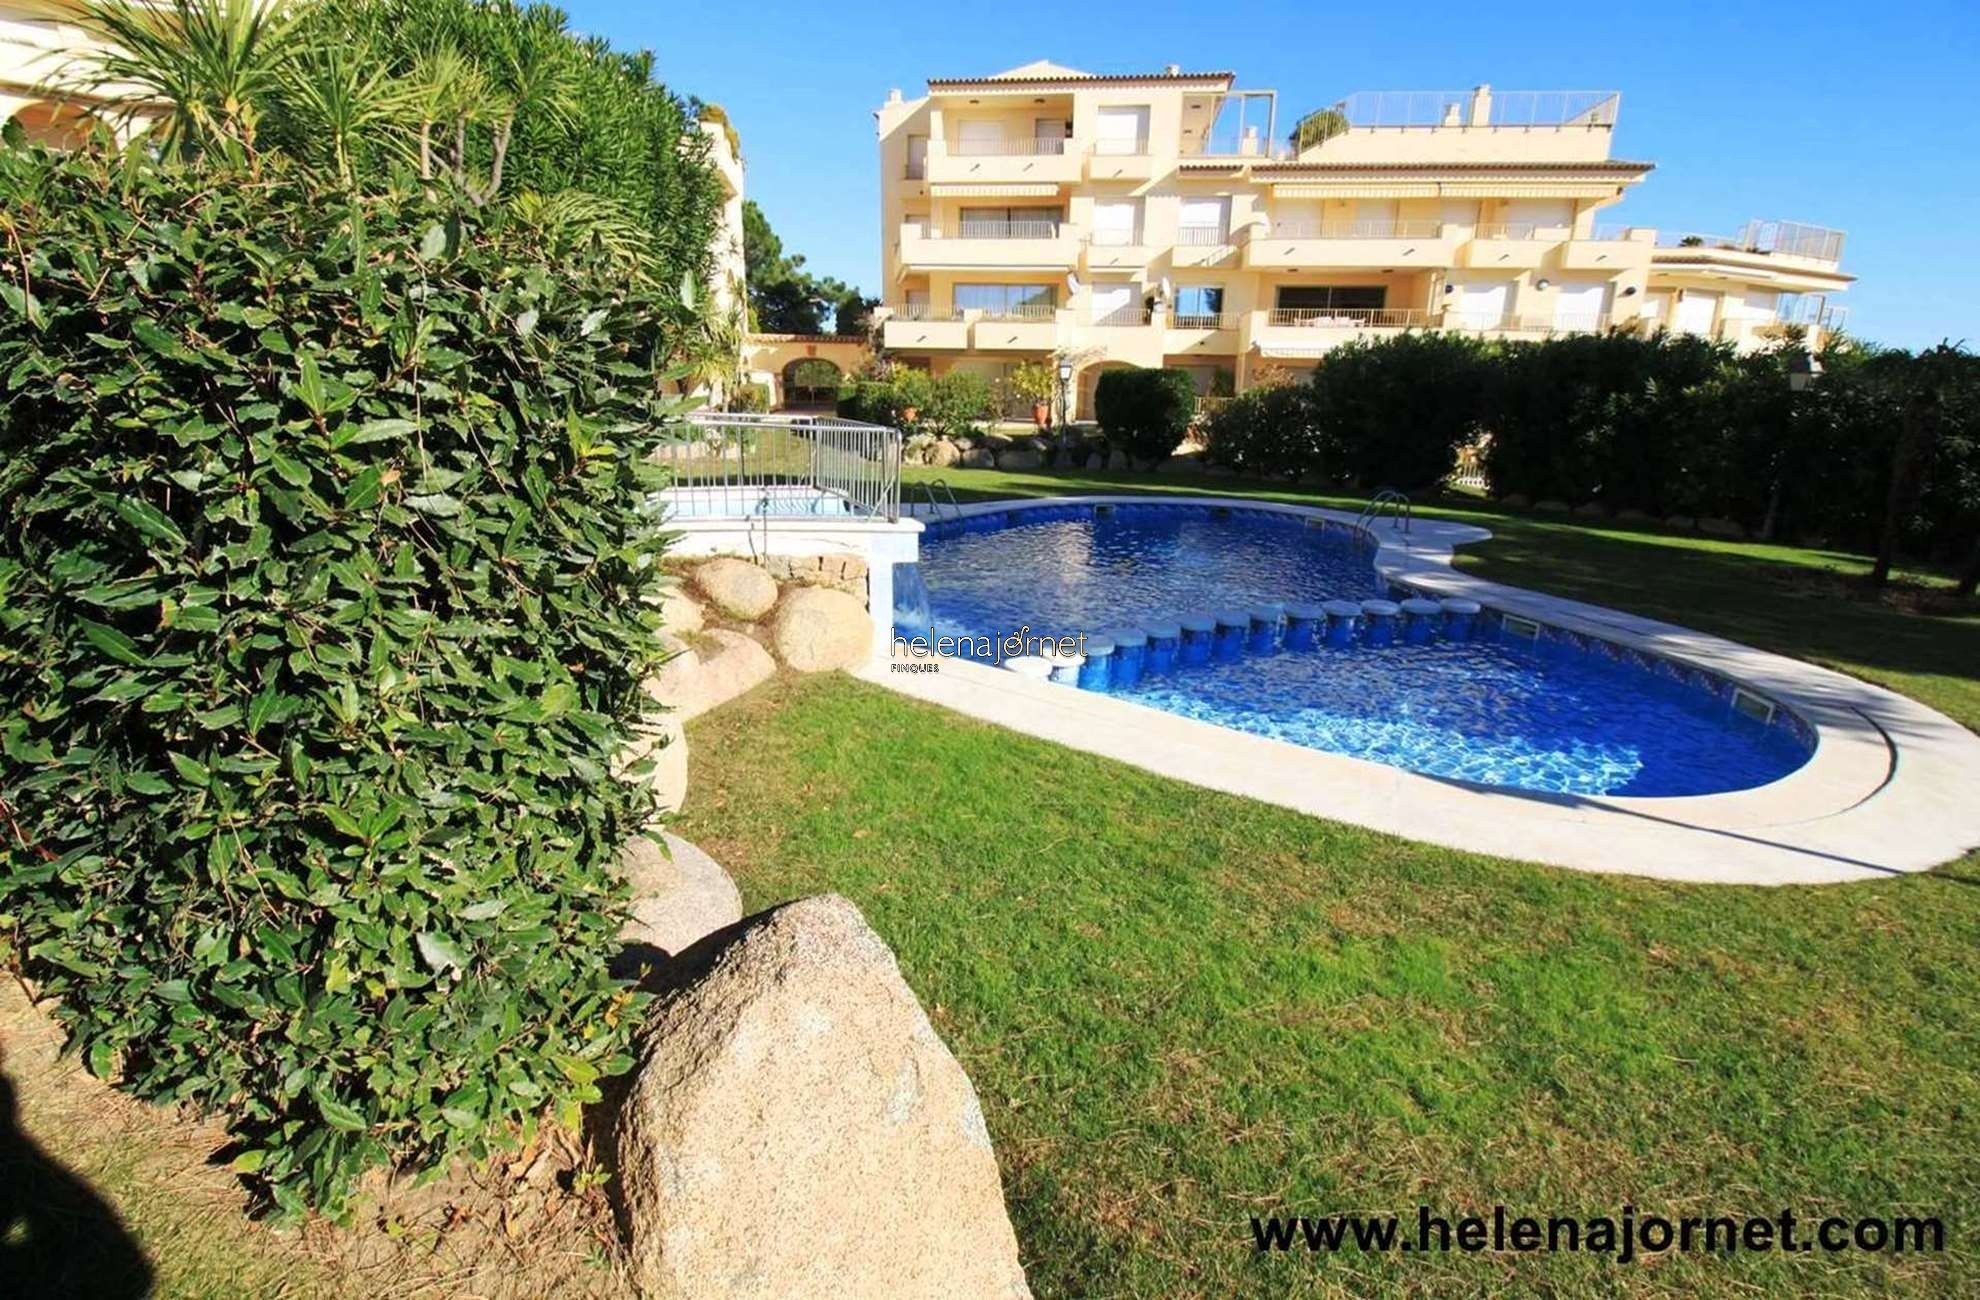 Apartment with terrace, WIFI, sea views and community pool - 46